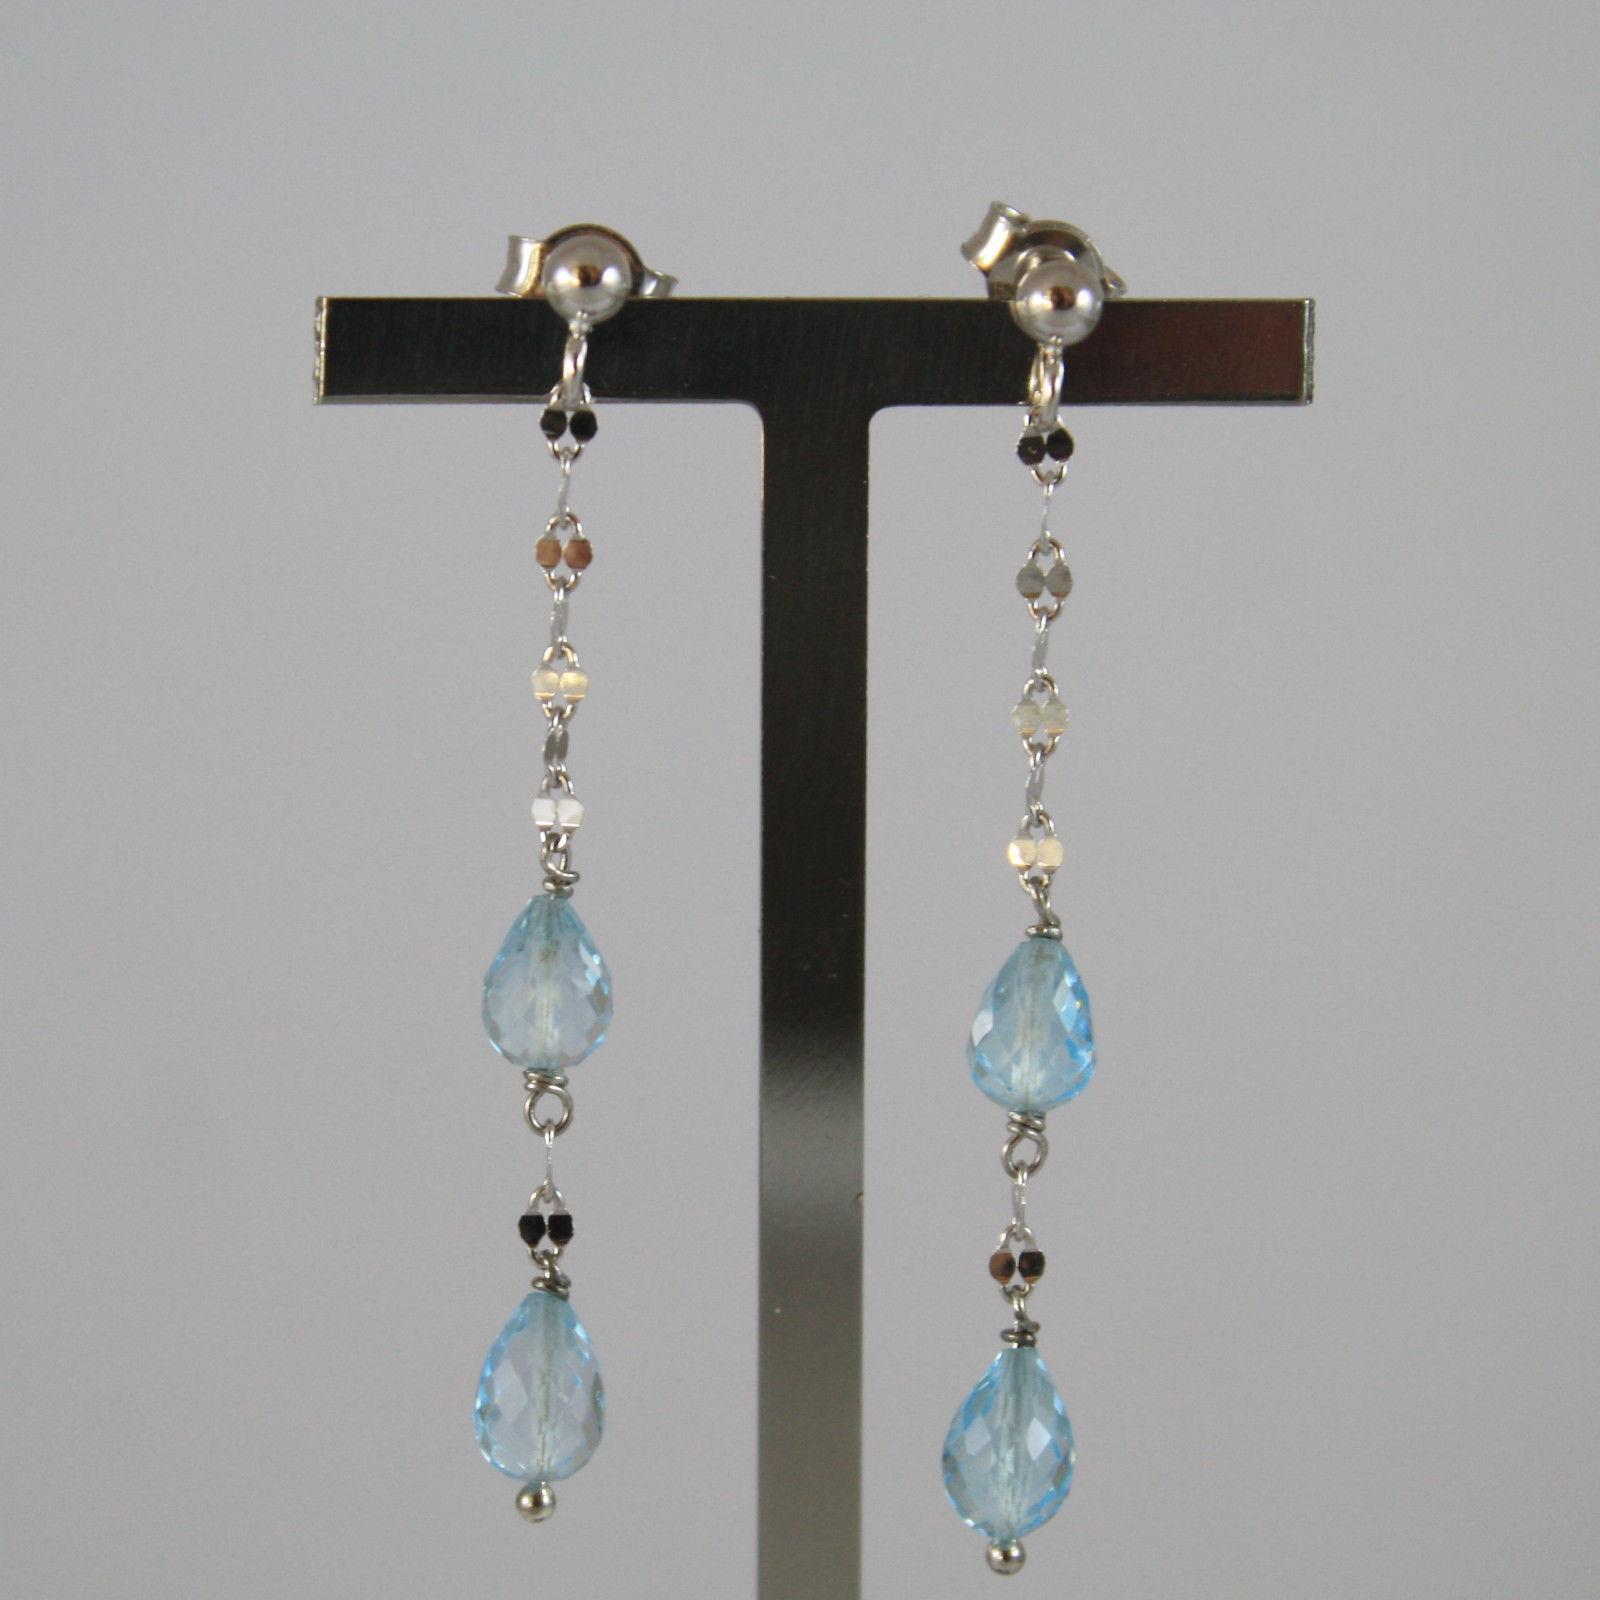 SOLID 18K WHITE GOLD EARRINGS, WITH DROP OF BLUE TOPAZ LENGTH 1.85 INCHES